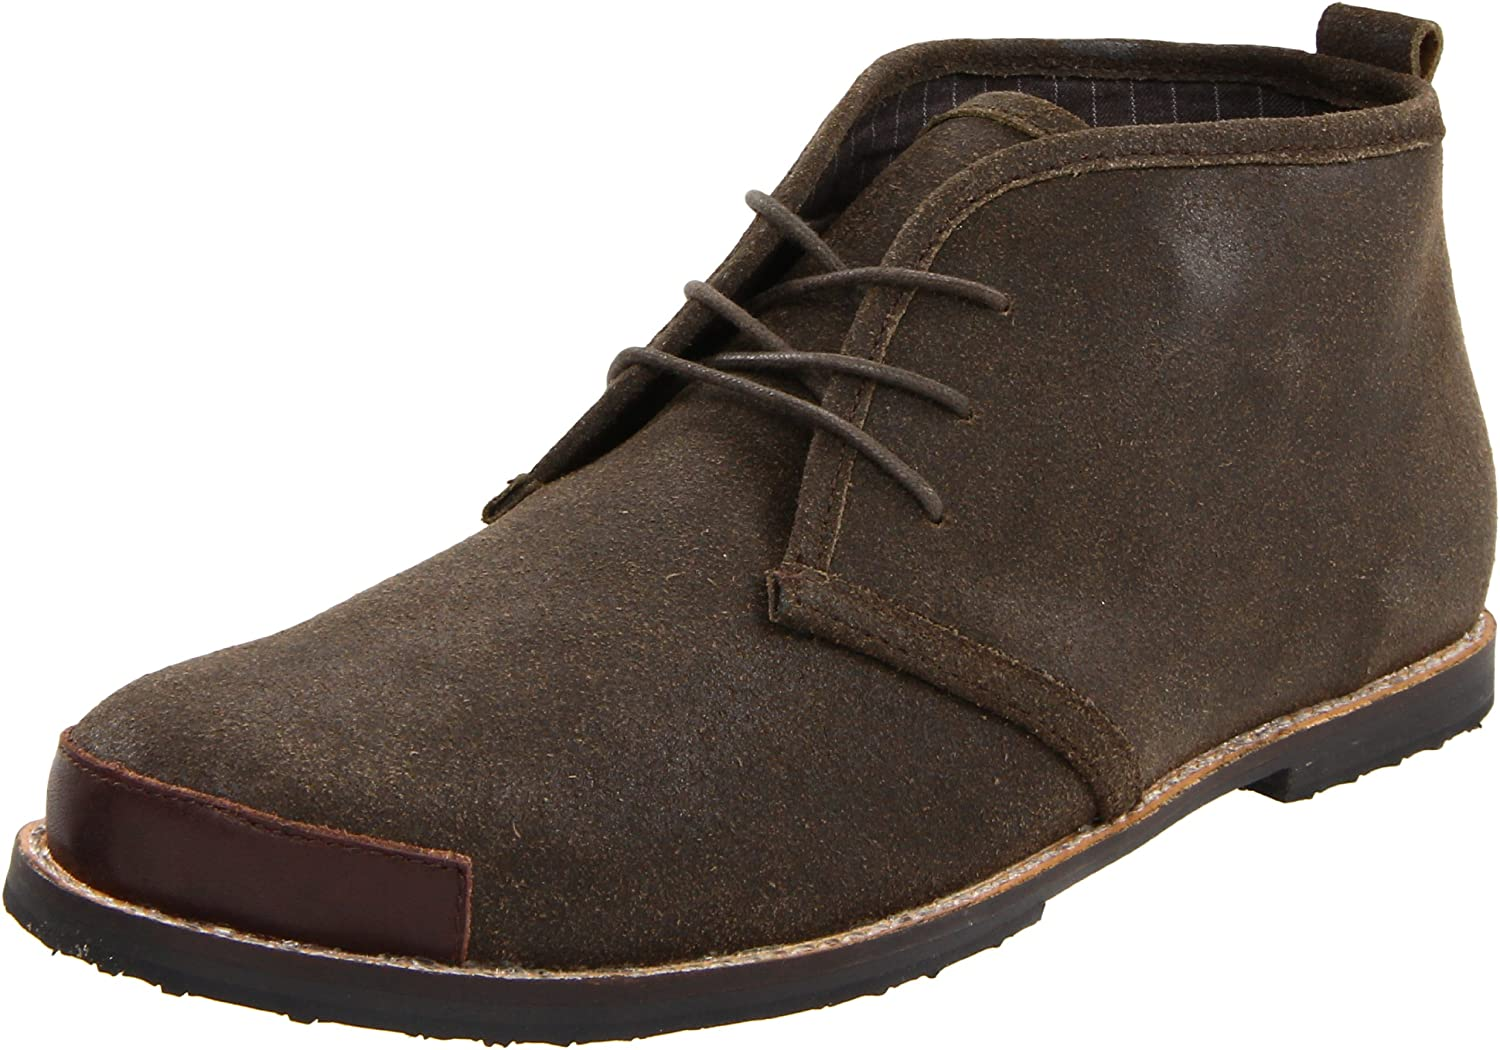 Wonderful Merrell Ashland Chukka Boots For Women 121PC  Save 56